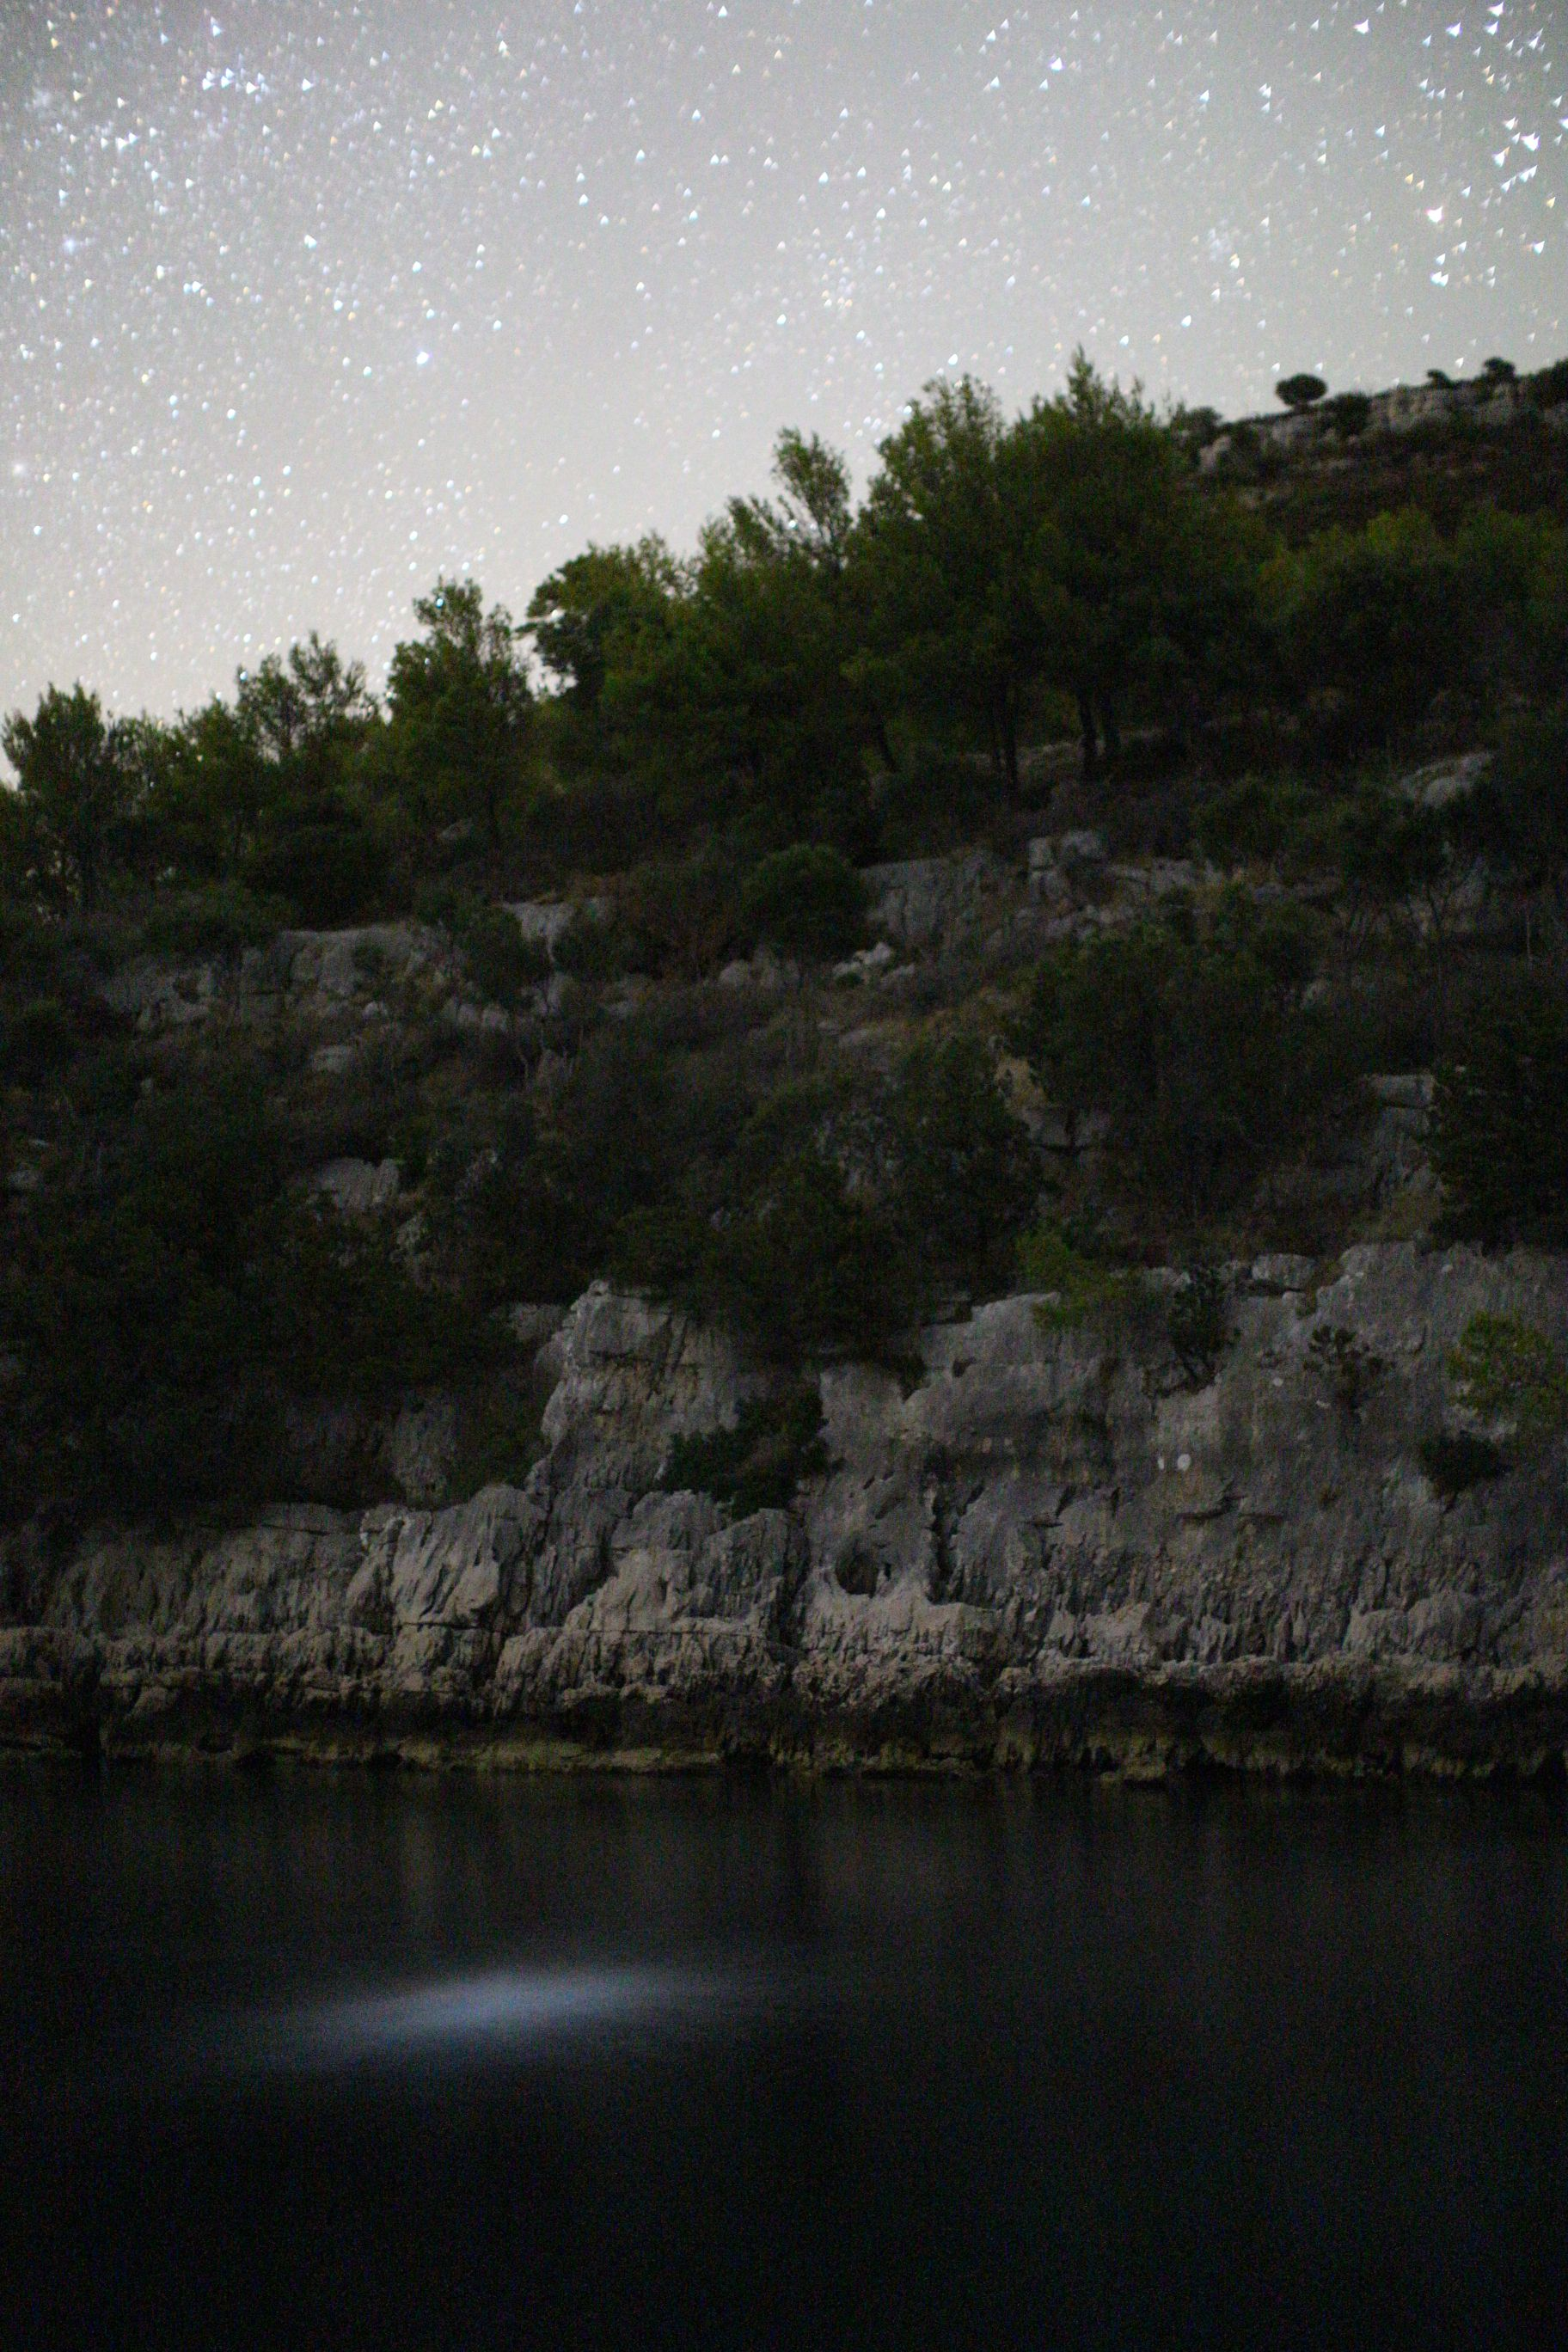 Lastovo, Croatia - stars with bioluminiscent plankton and reflection of stones and stars in water of Skrivena Luka MR